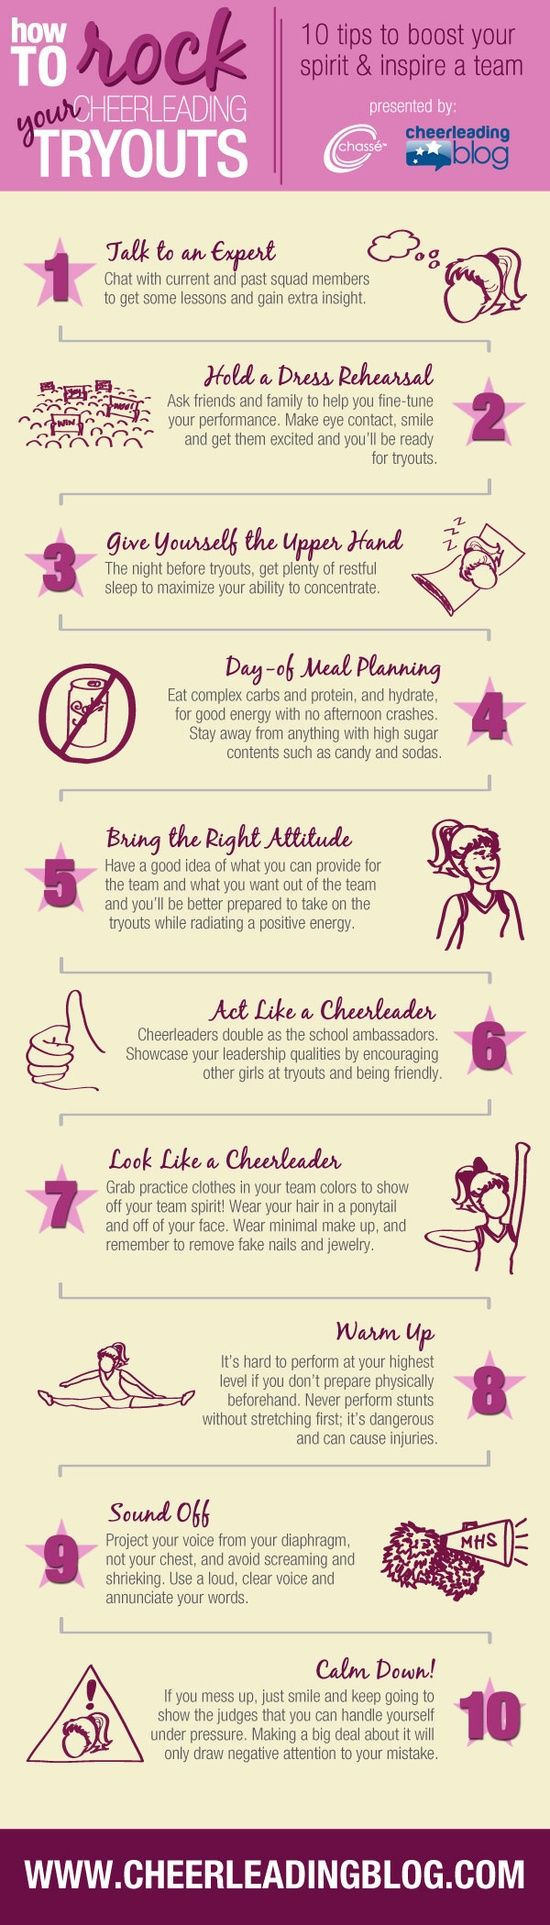 Cheer Infograph: How to Rock Your Cheerleading Tryouts #infographic